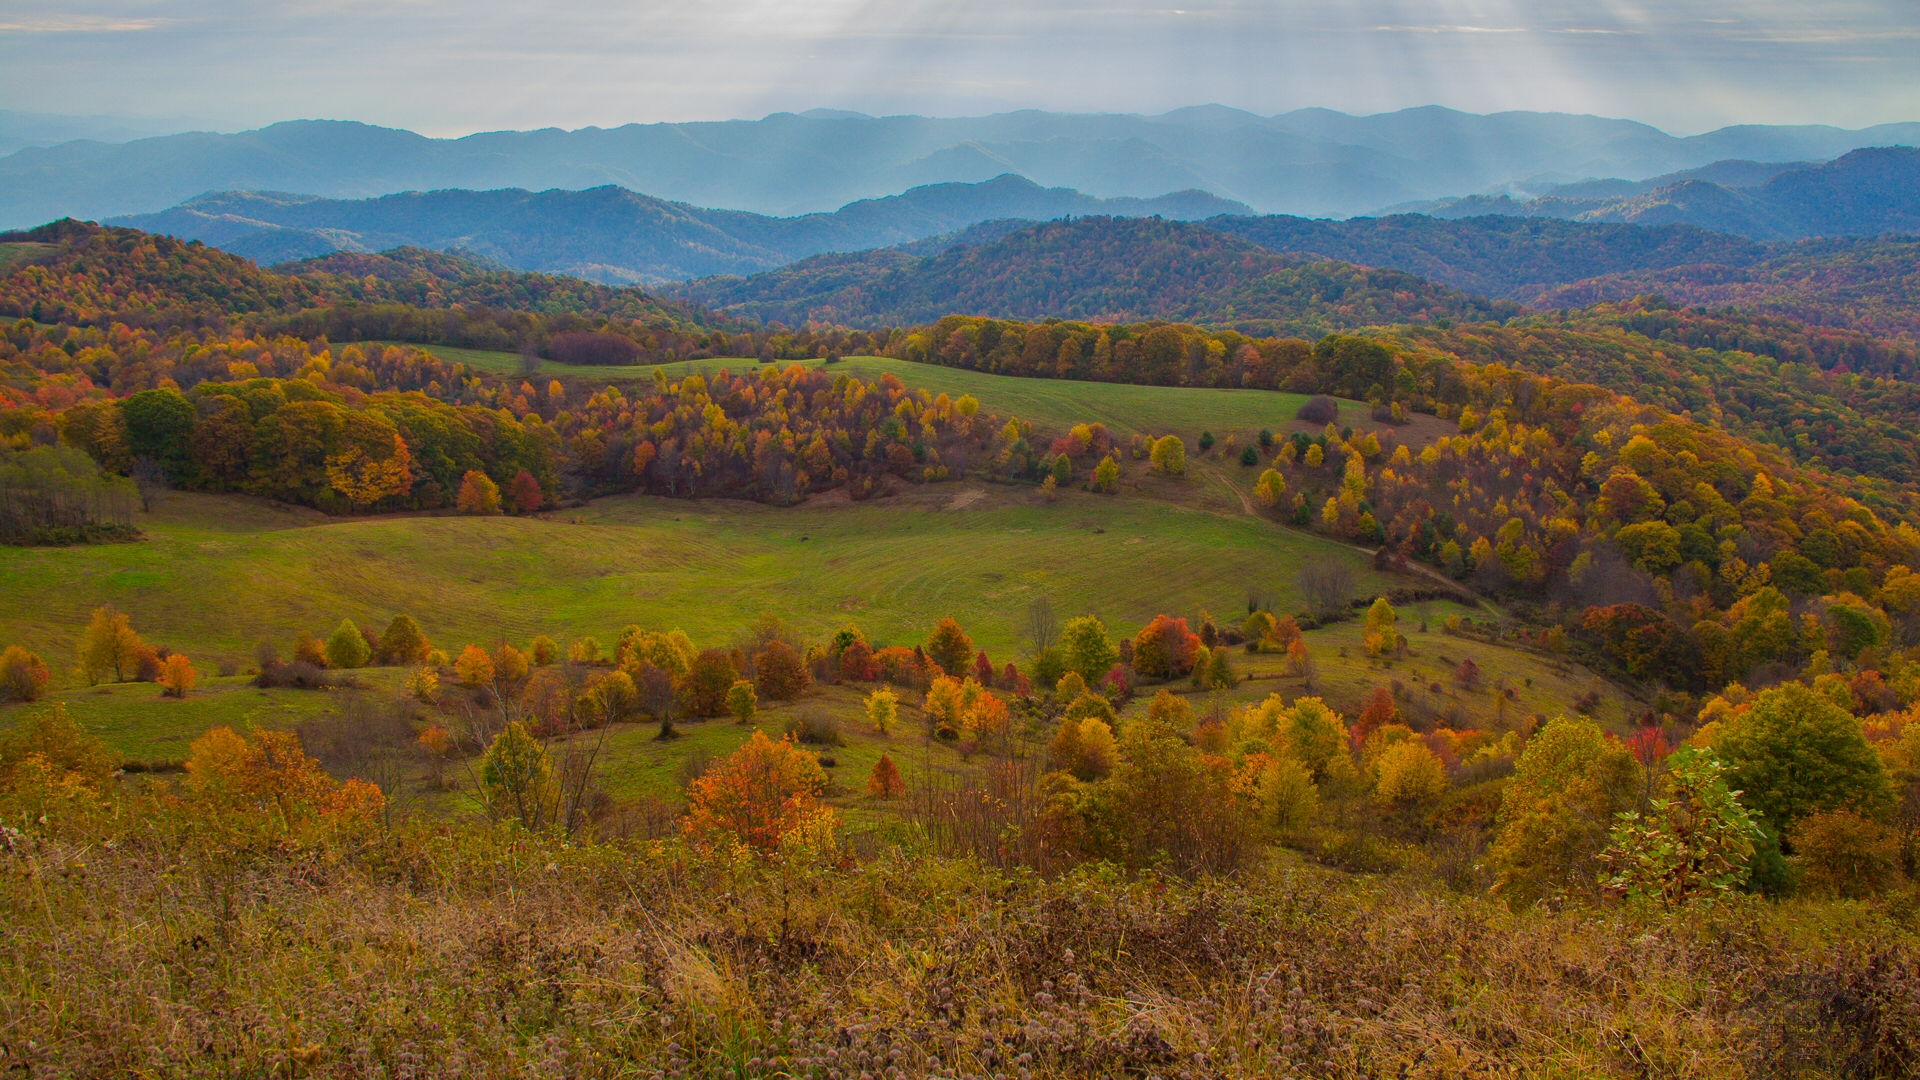 Buckeye Ridge from Max Patch on the Appalachian Trail - Photo by Jeff Clark